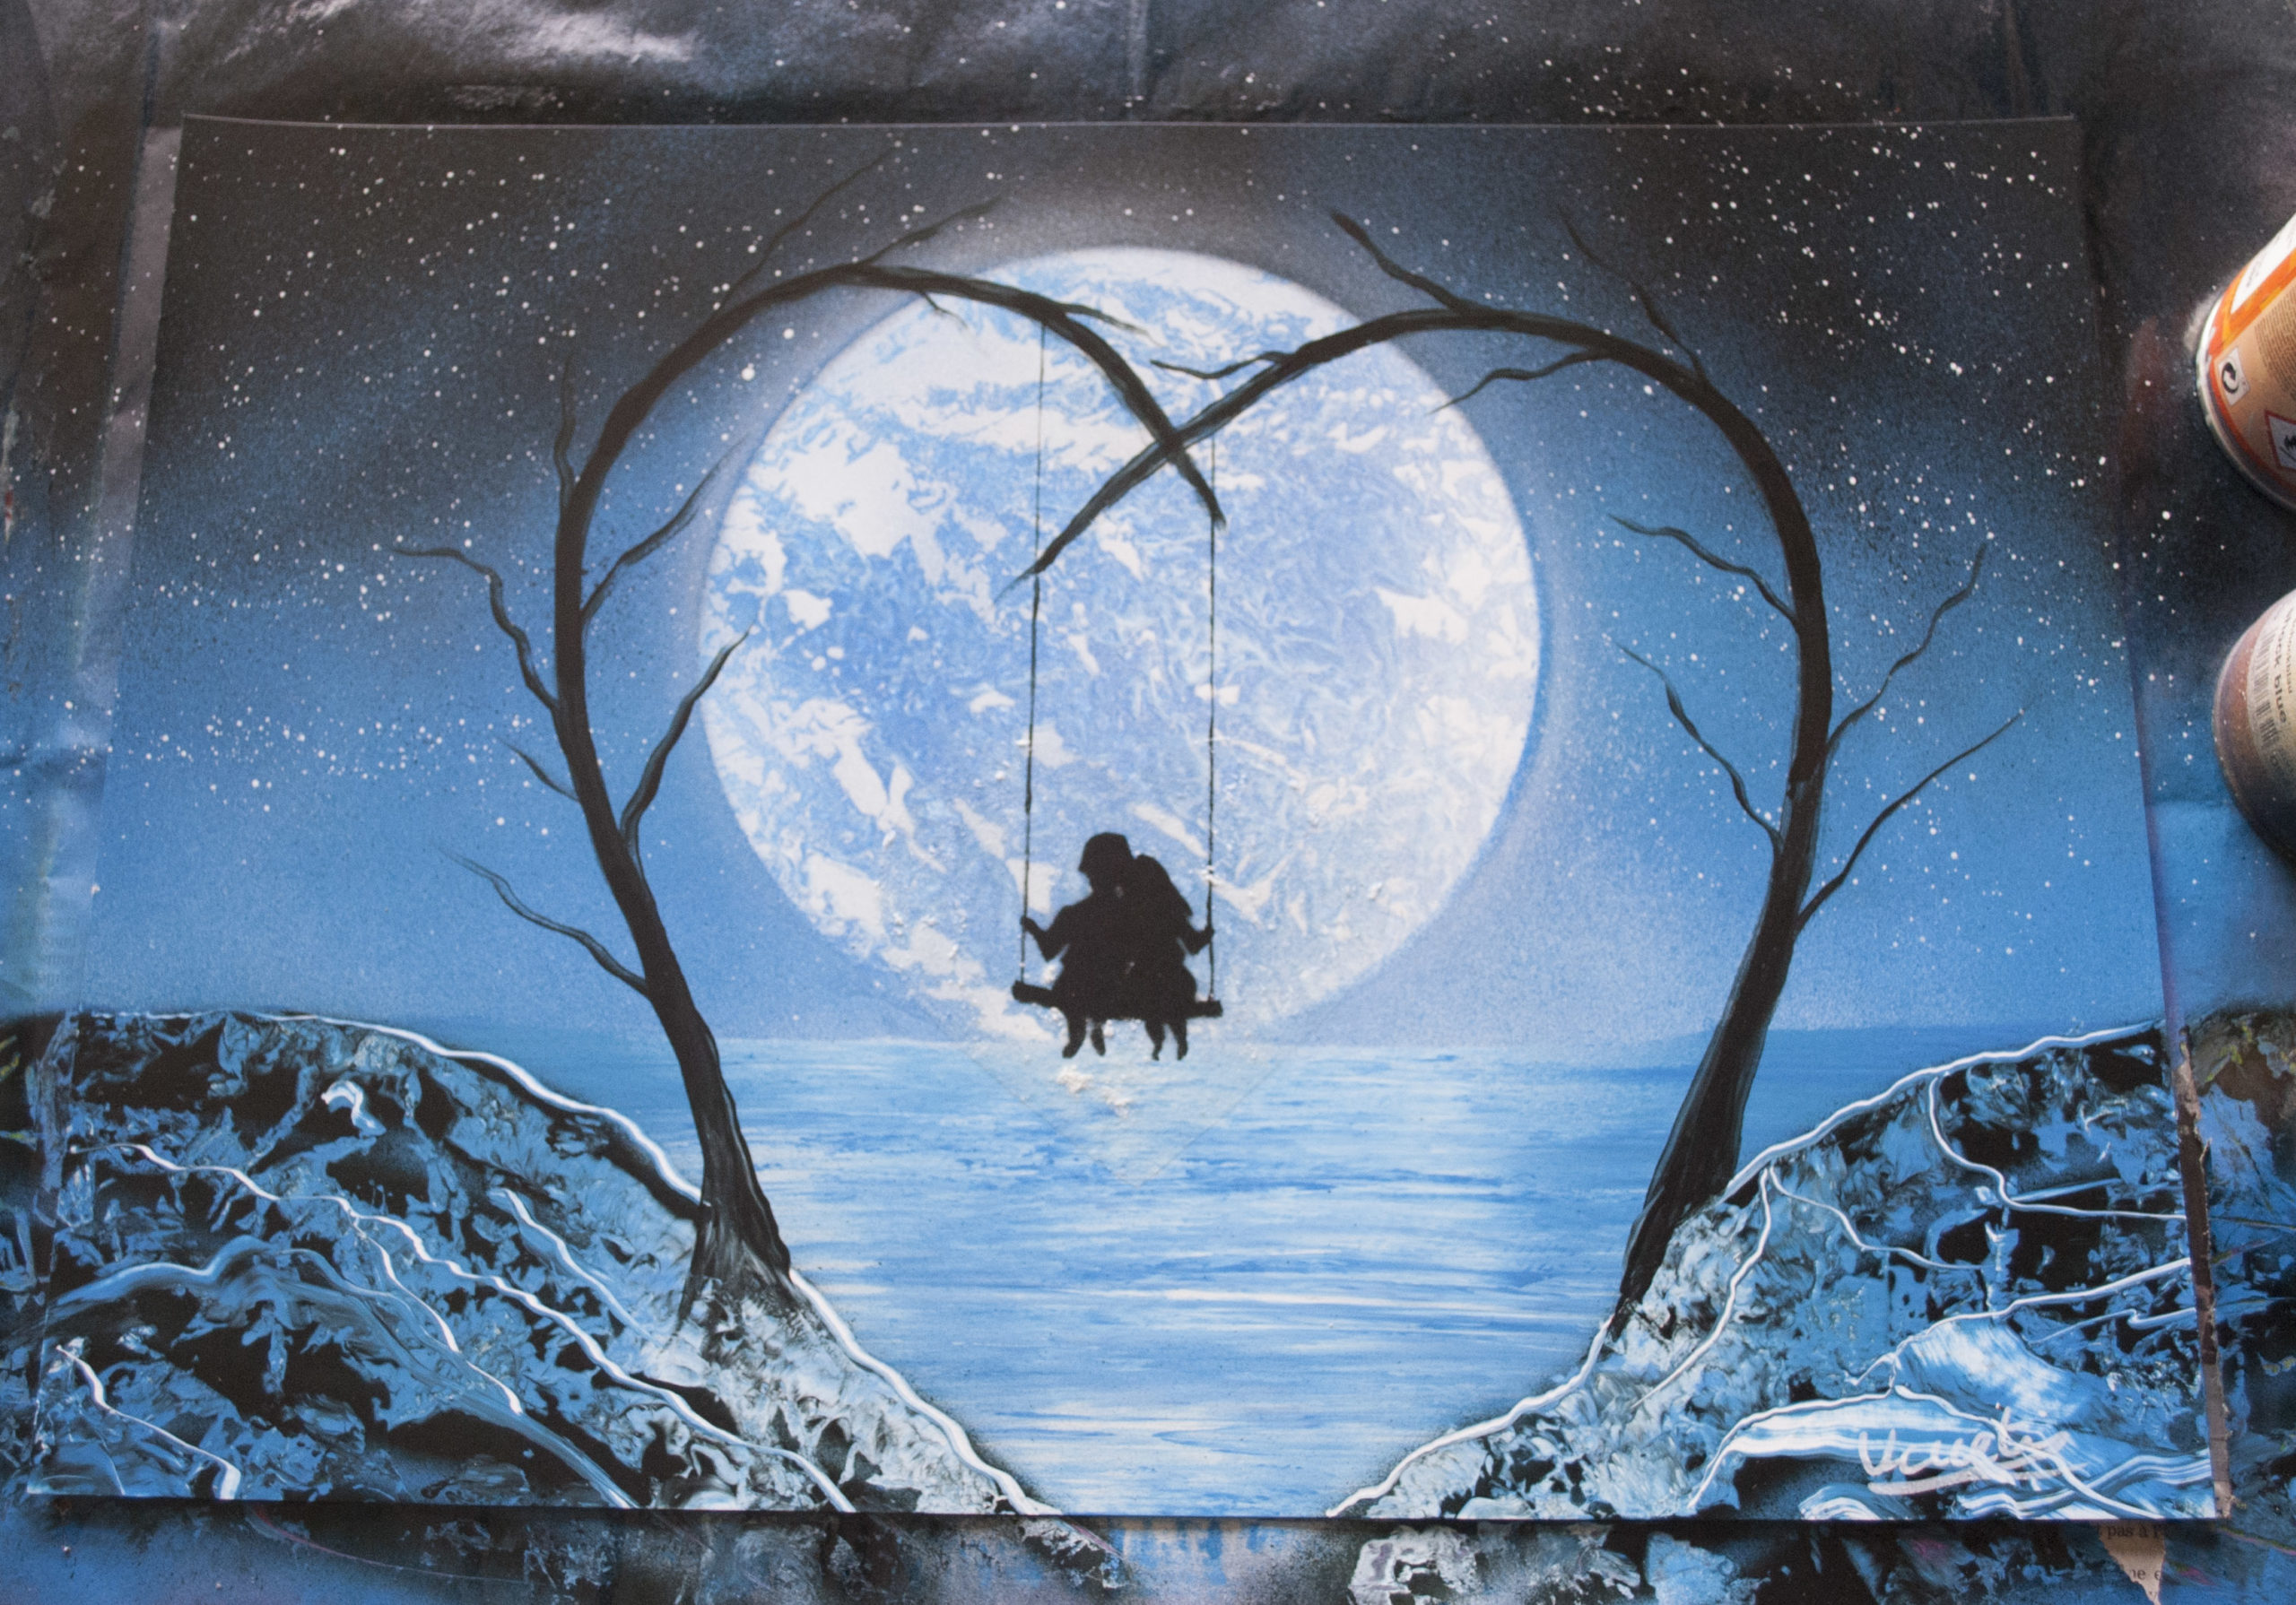 Couple, heart, valentine -Spray paint art- by Ucuetis